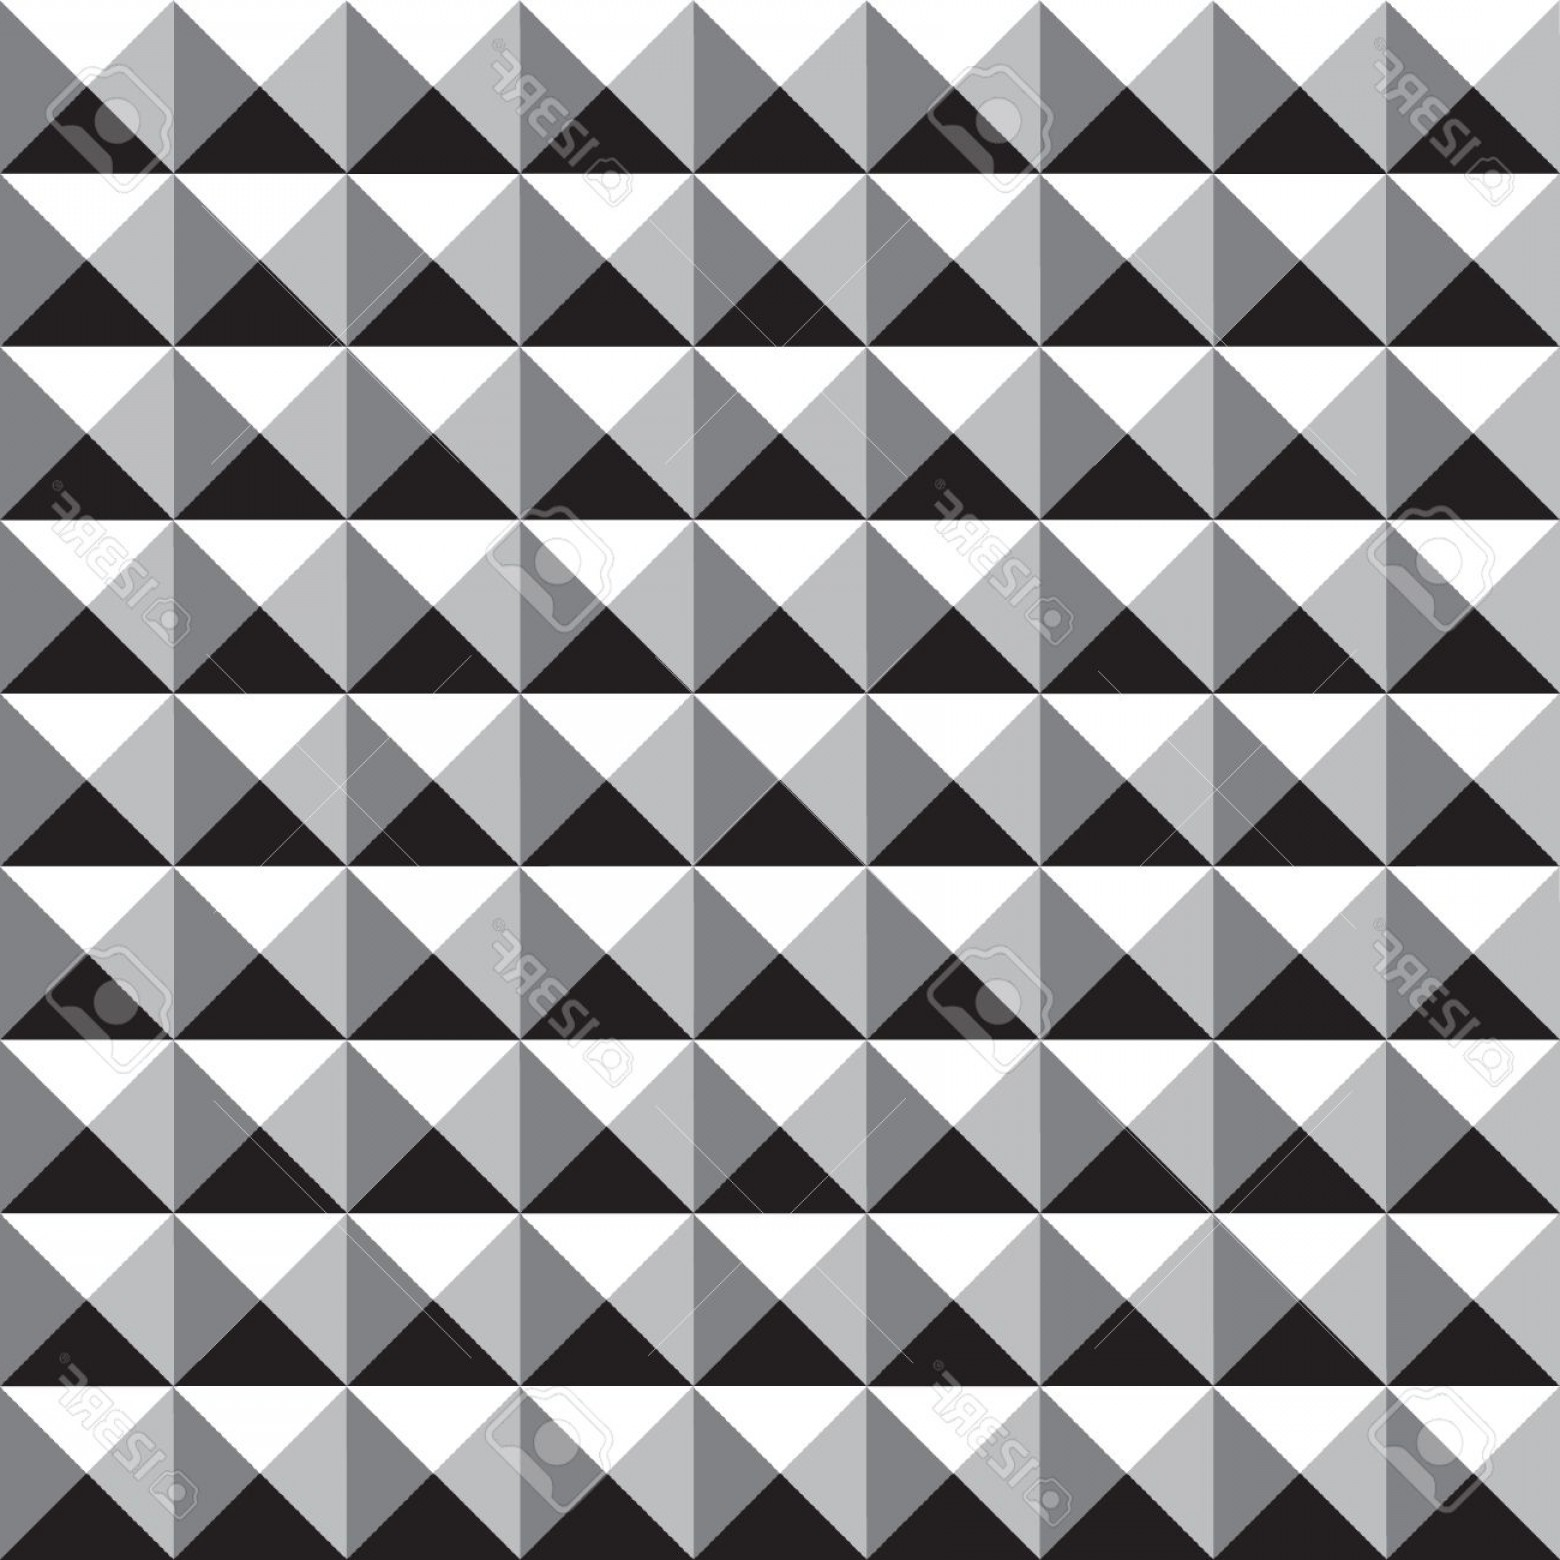 Pyramid Stud Vector: Photostock Vector Seamless Square Stud Pattern Background